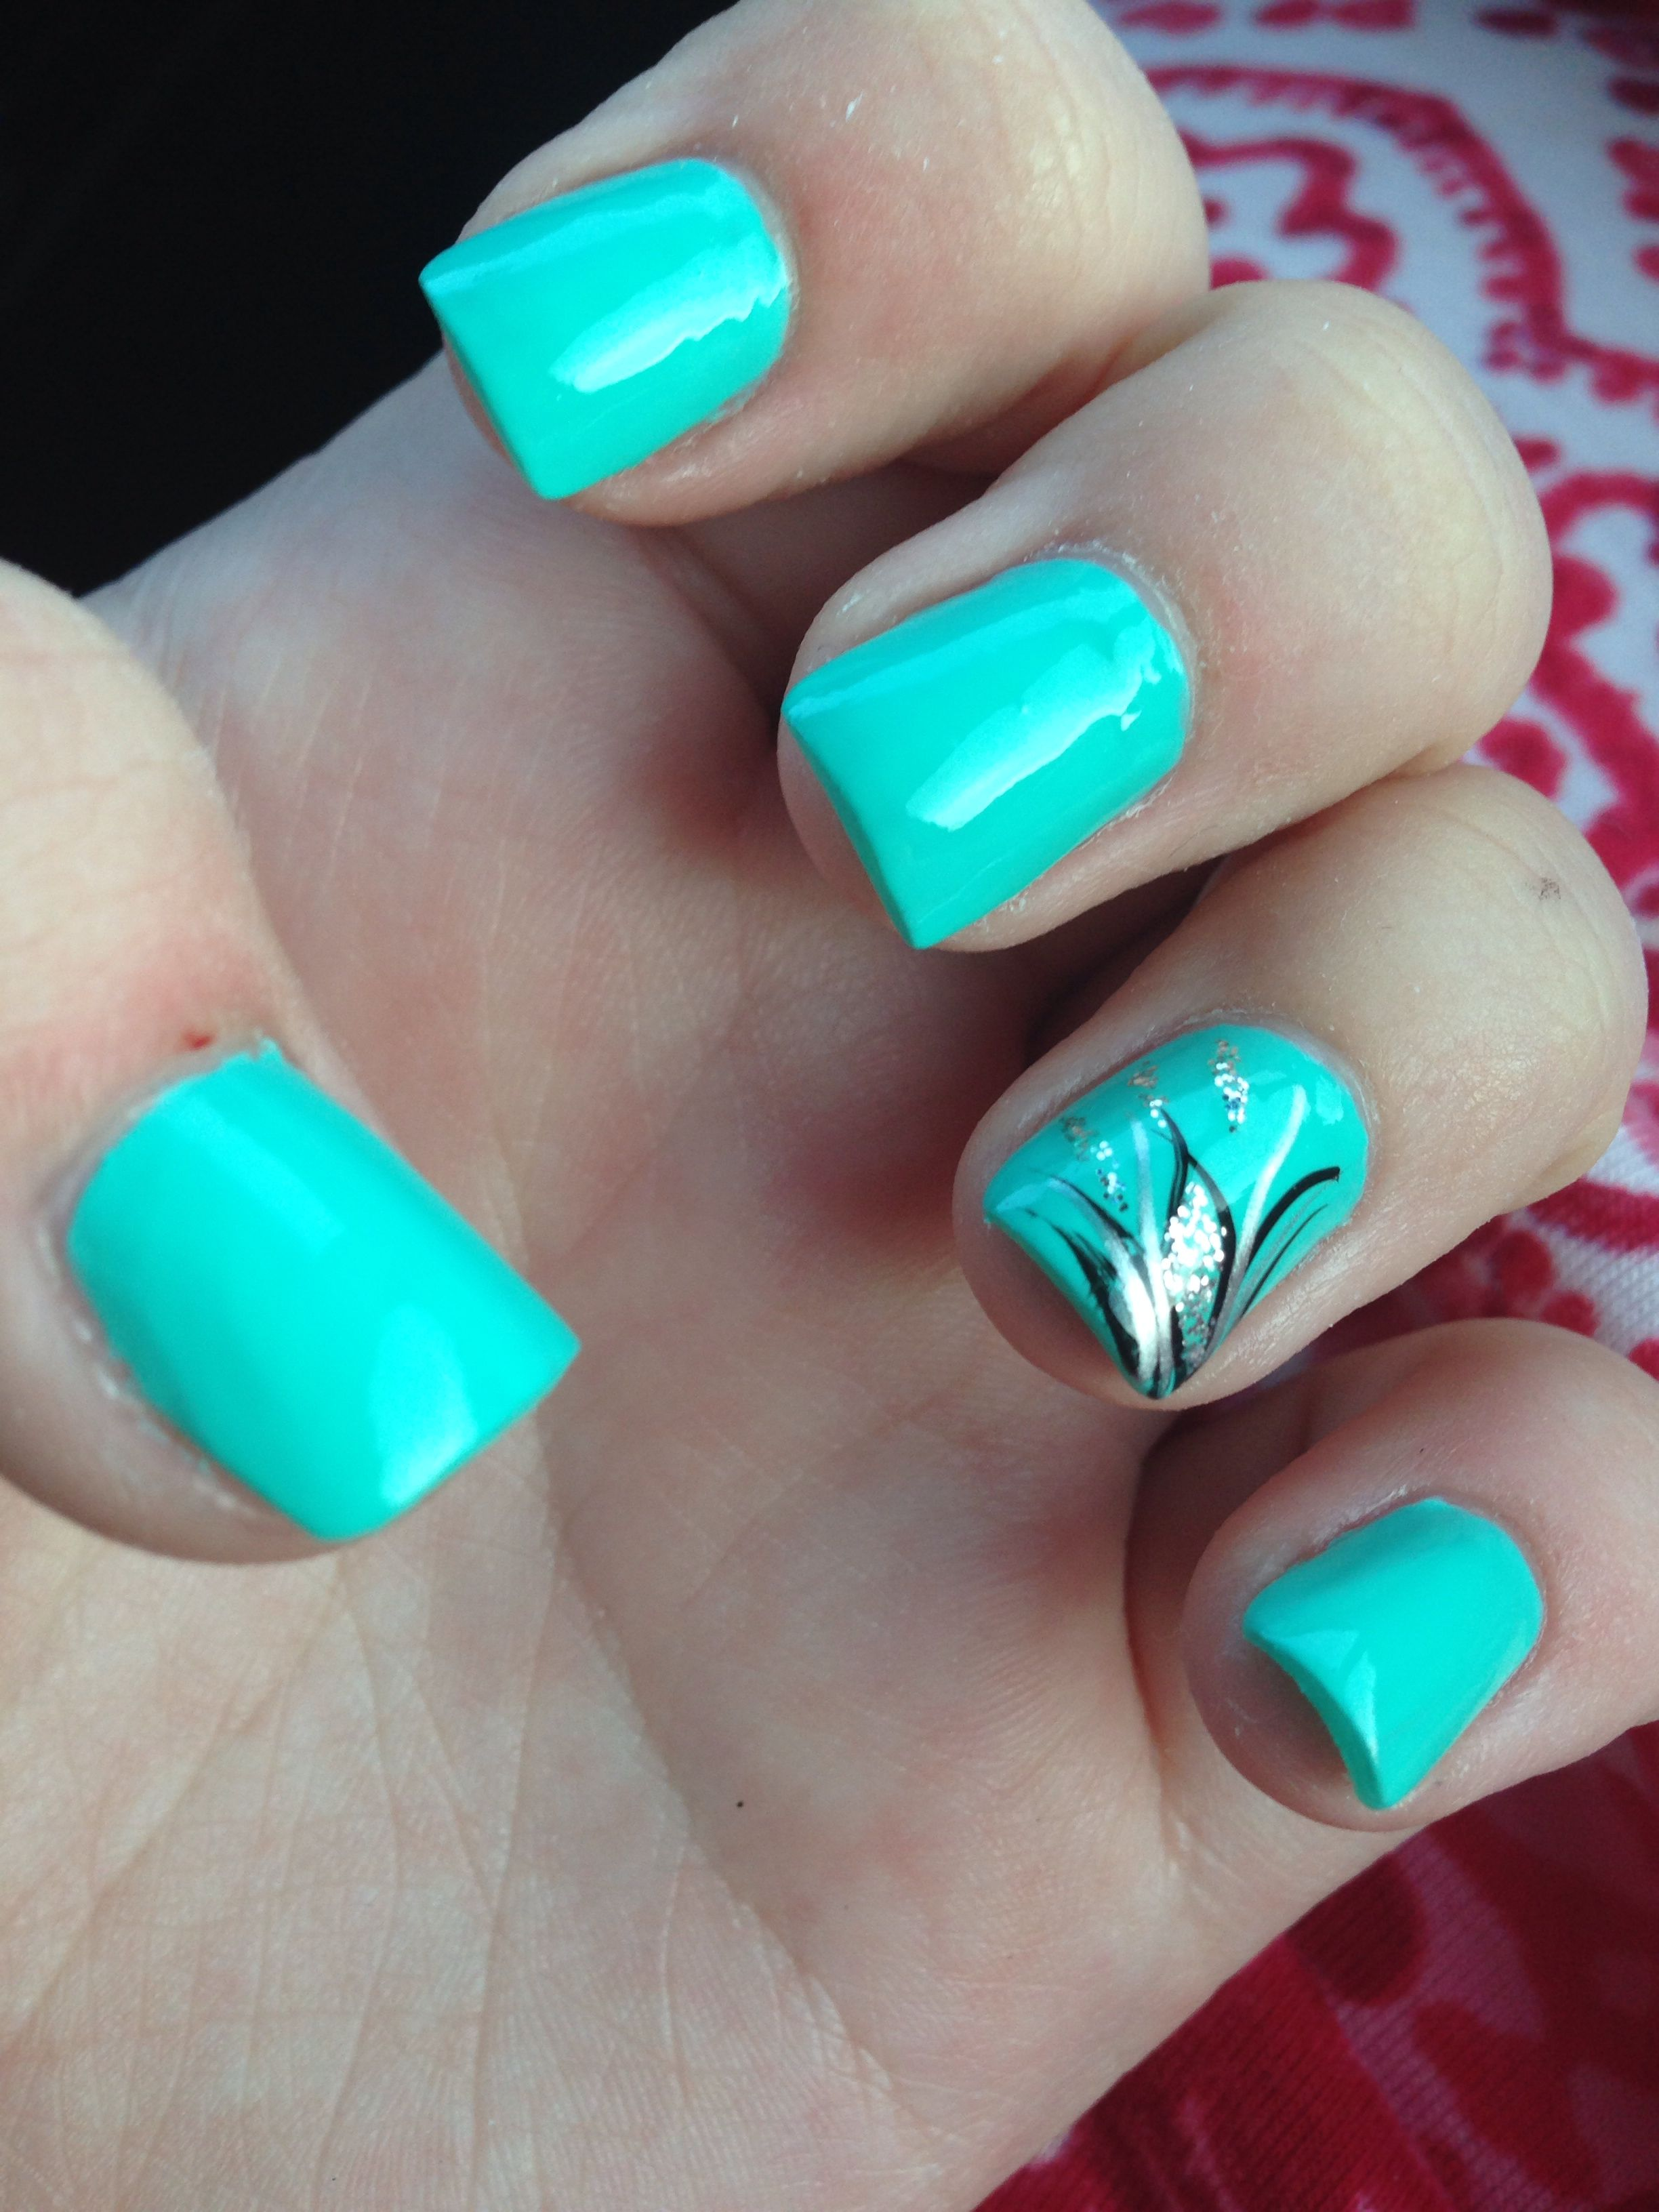 Acrylic Nails With Flowers: Aqua Nails With Design Acrylic